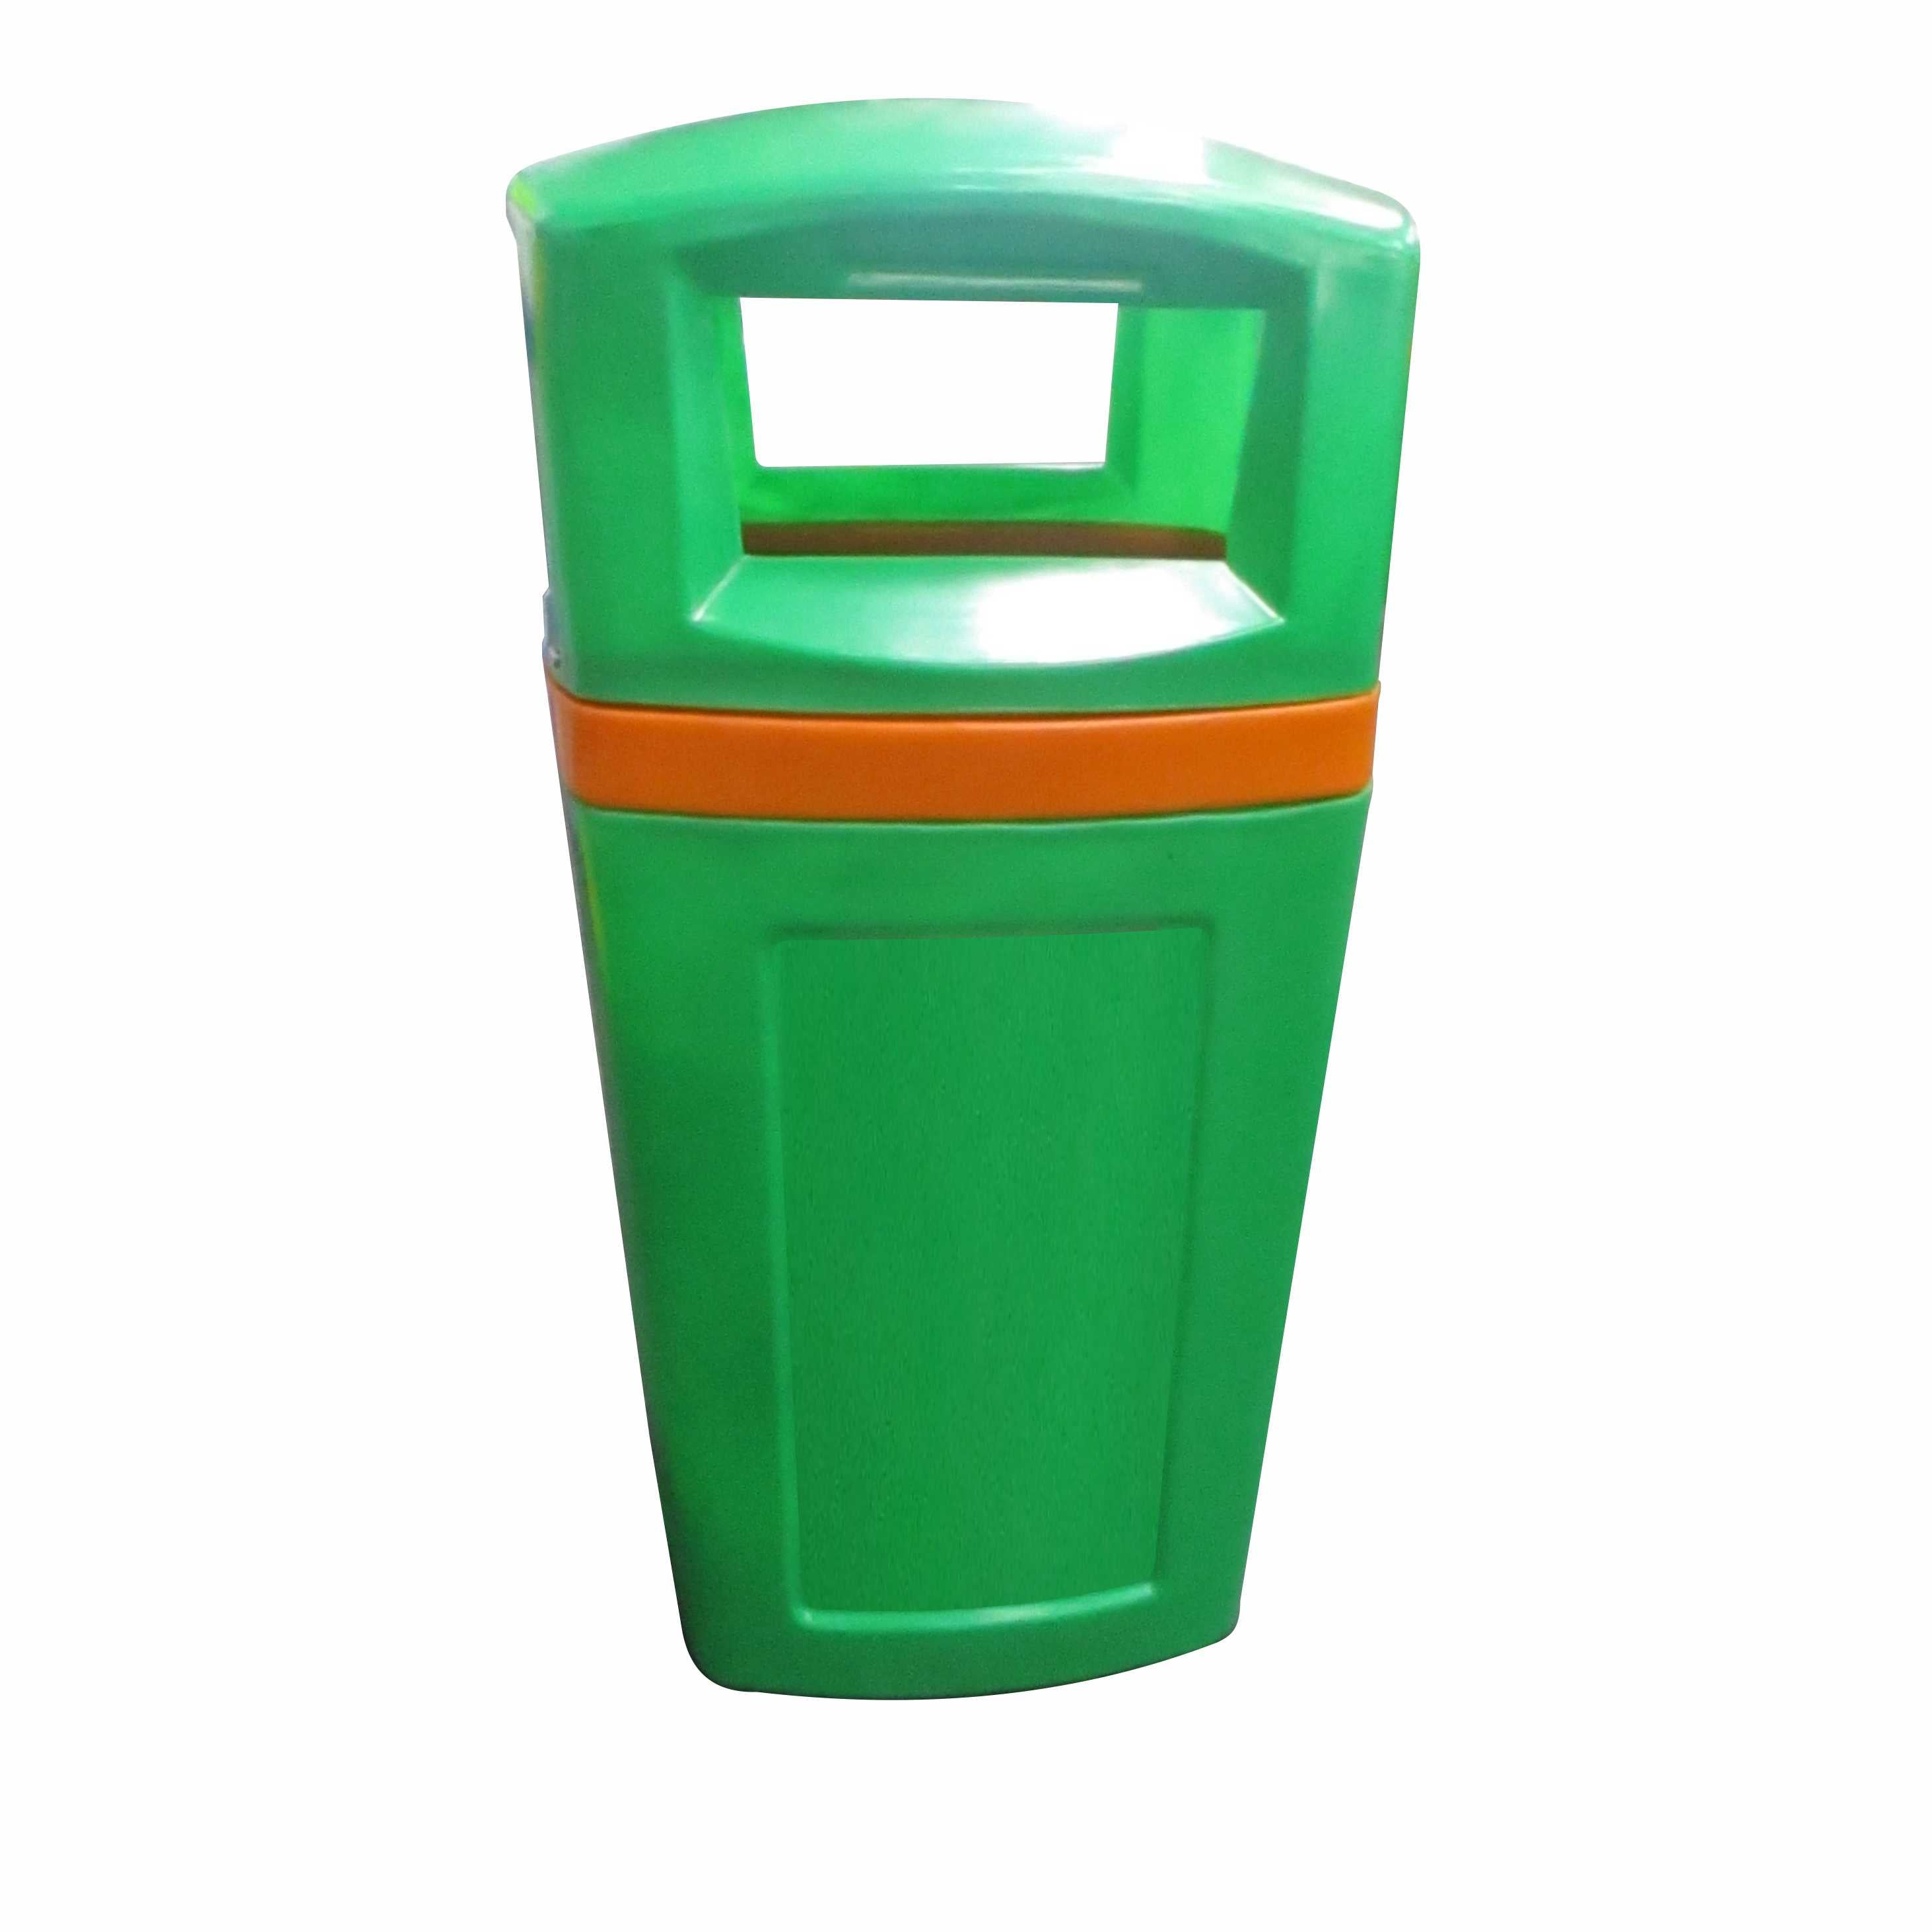 180L Litter Advertising Bin